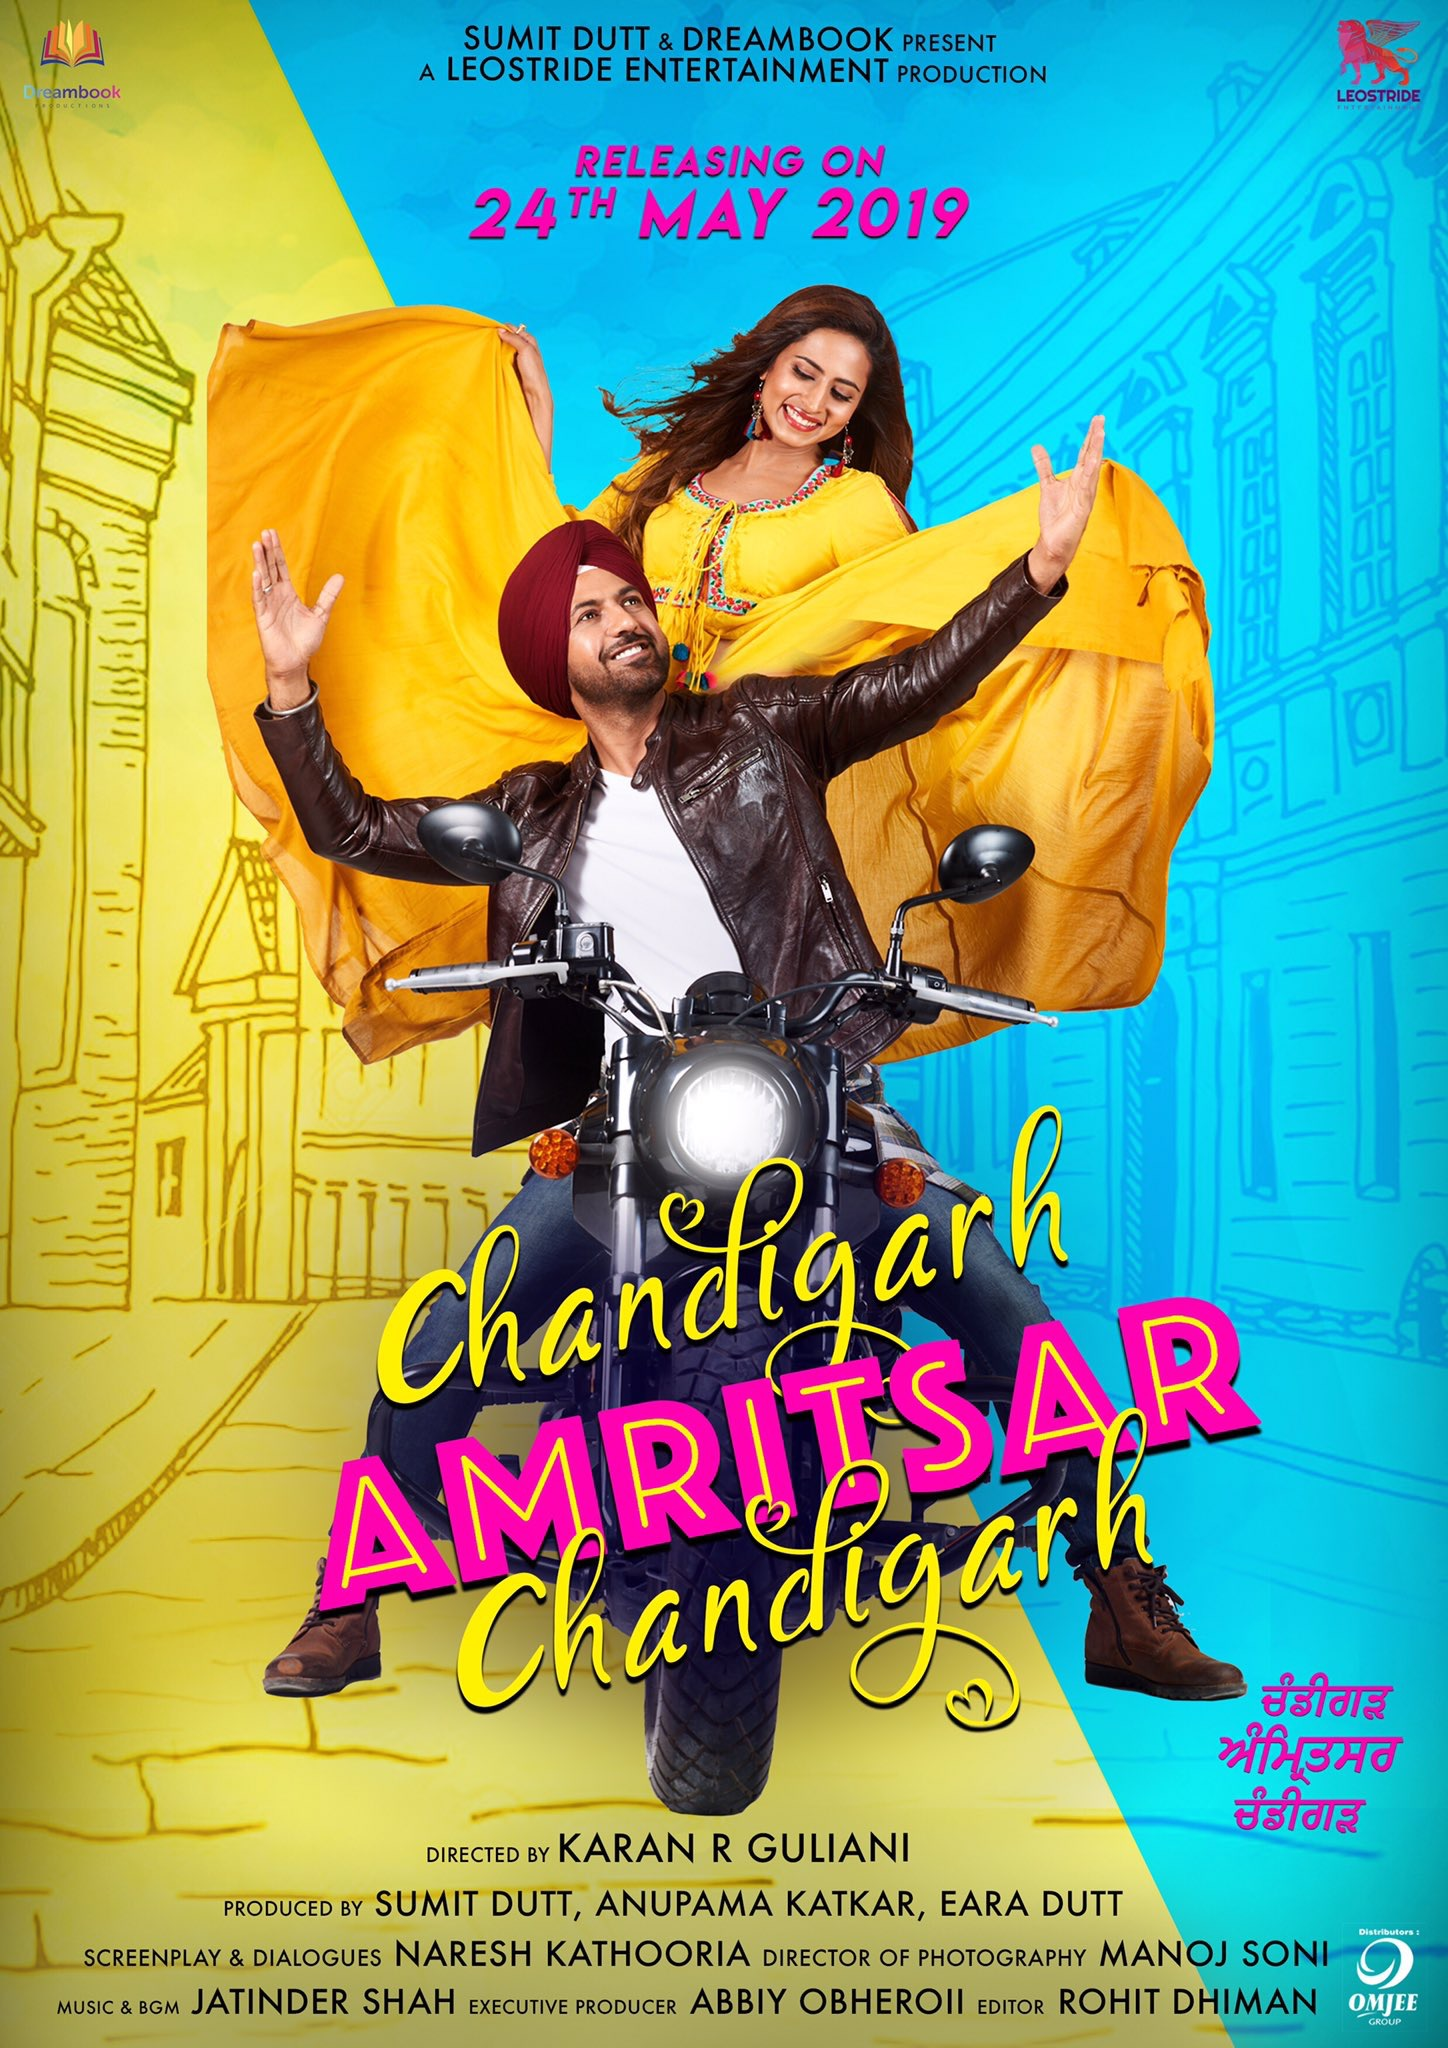 Chandigarh Amritsar Chandigarh (2019) Punjabi 720p HDRip x264